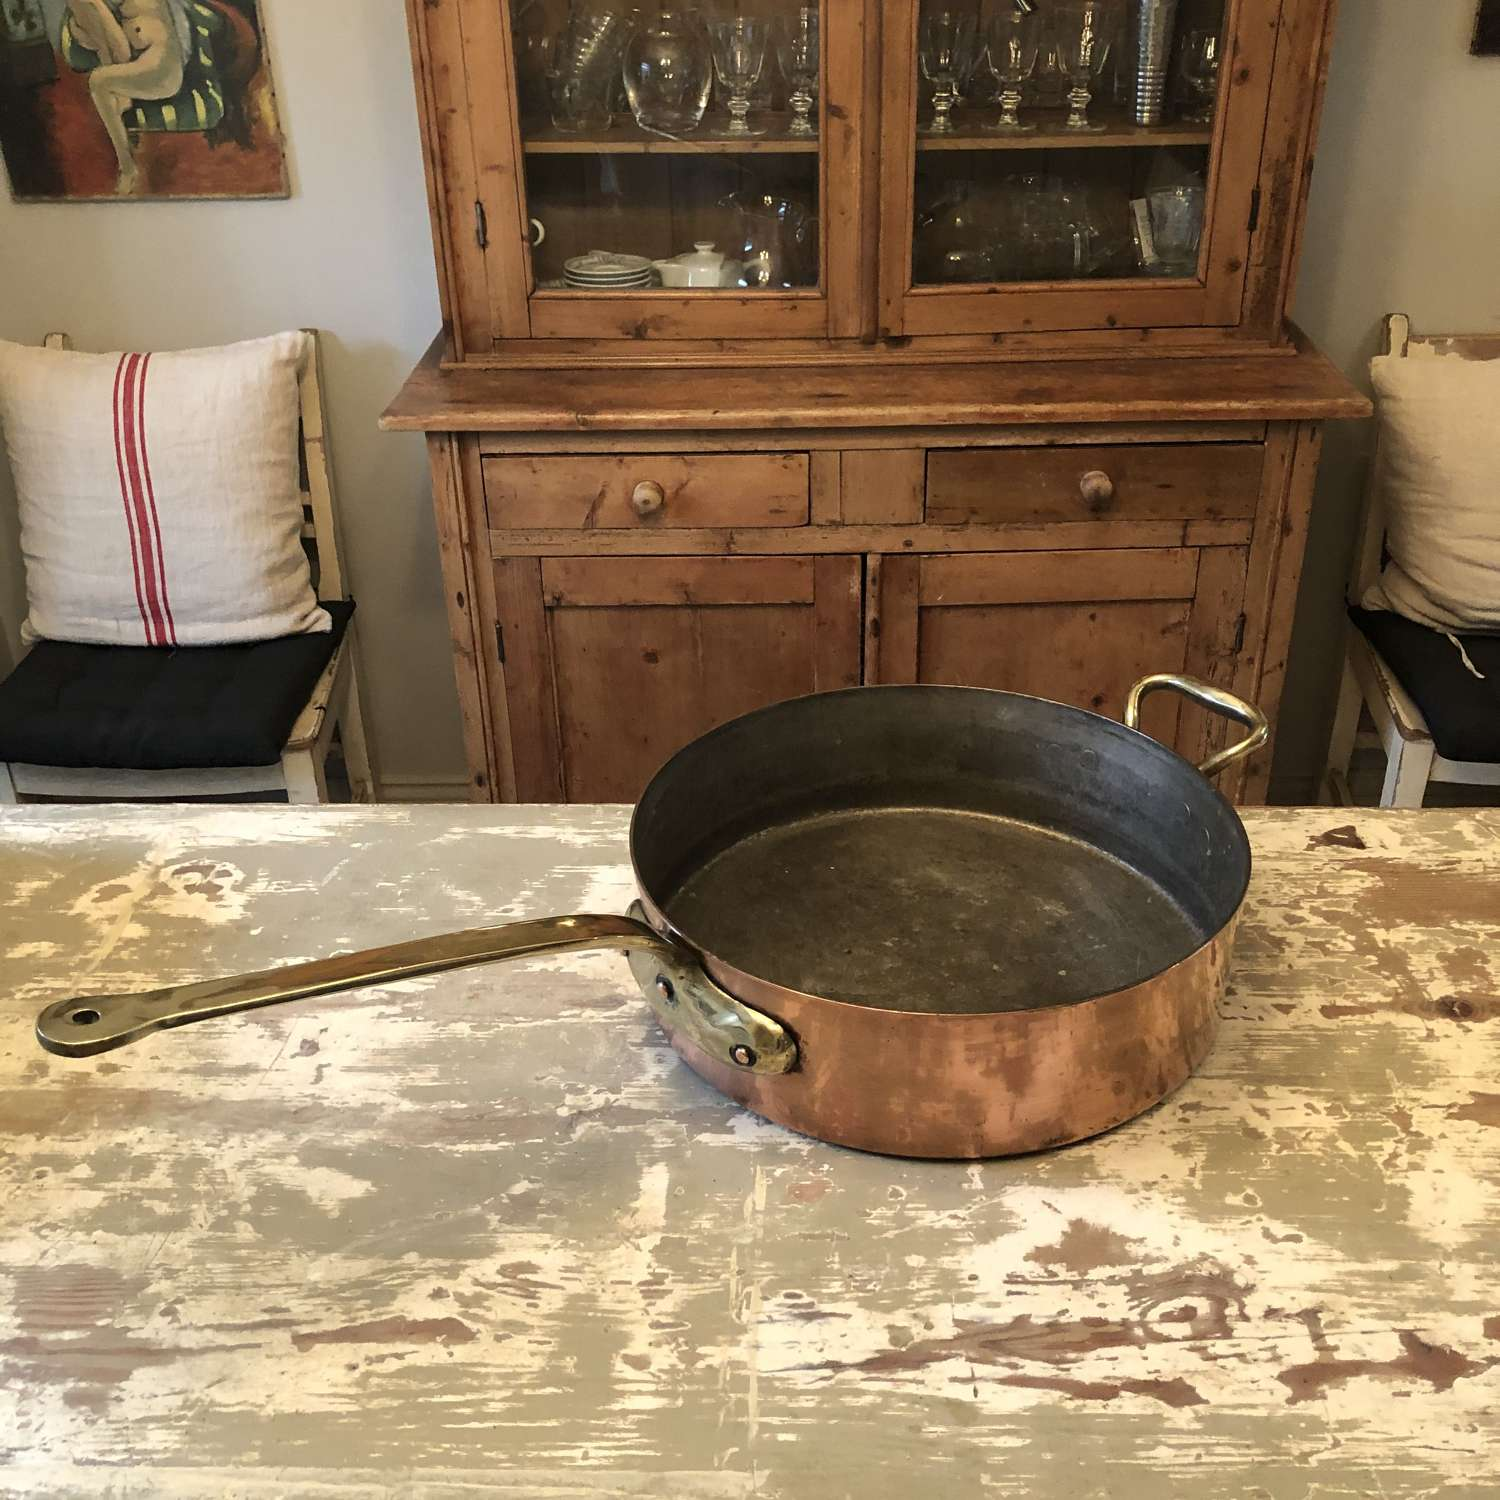 A very large copper kitchen pan